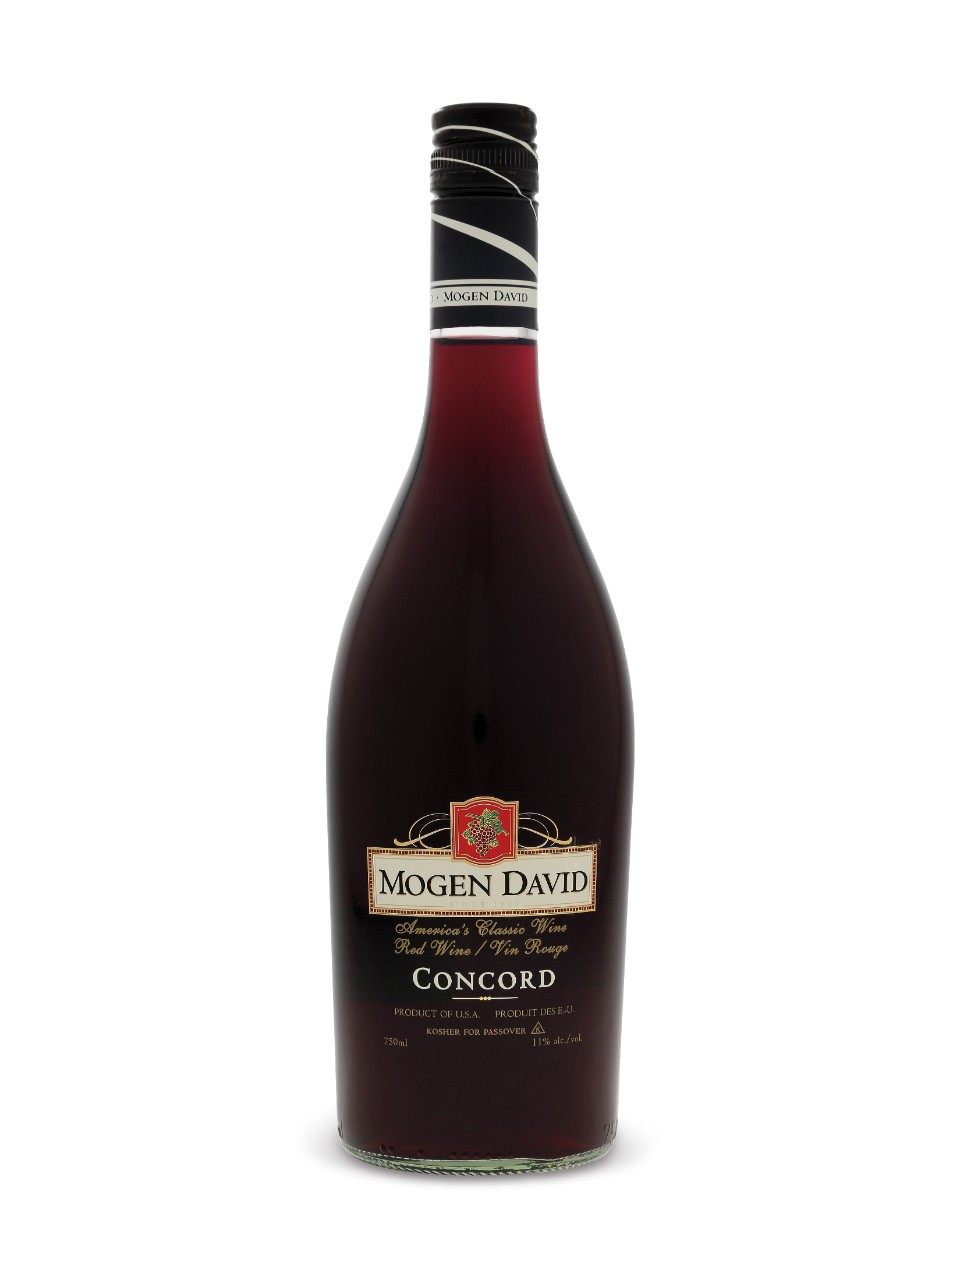 Mogen David Concord KP from LCBO